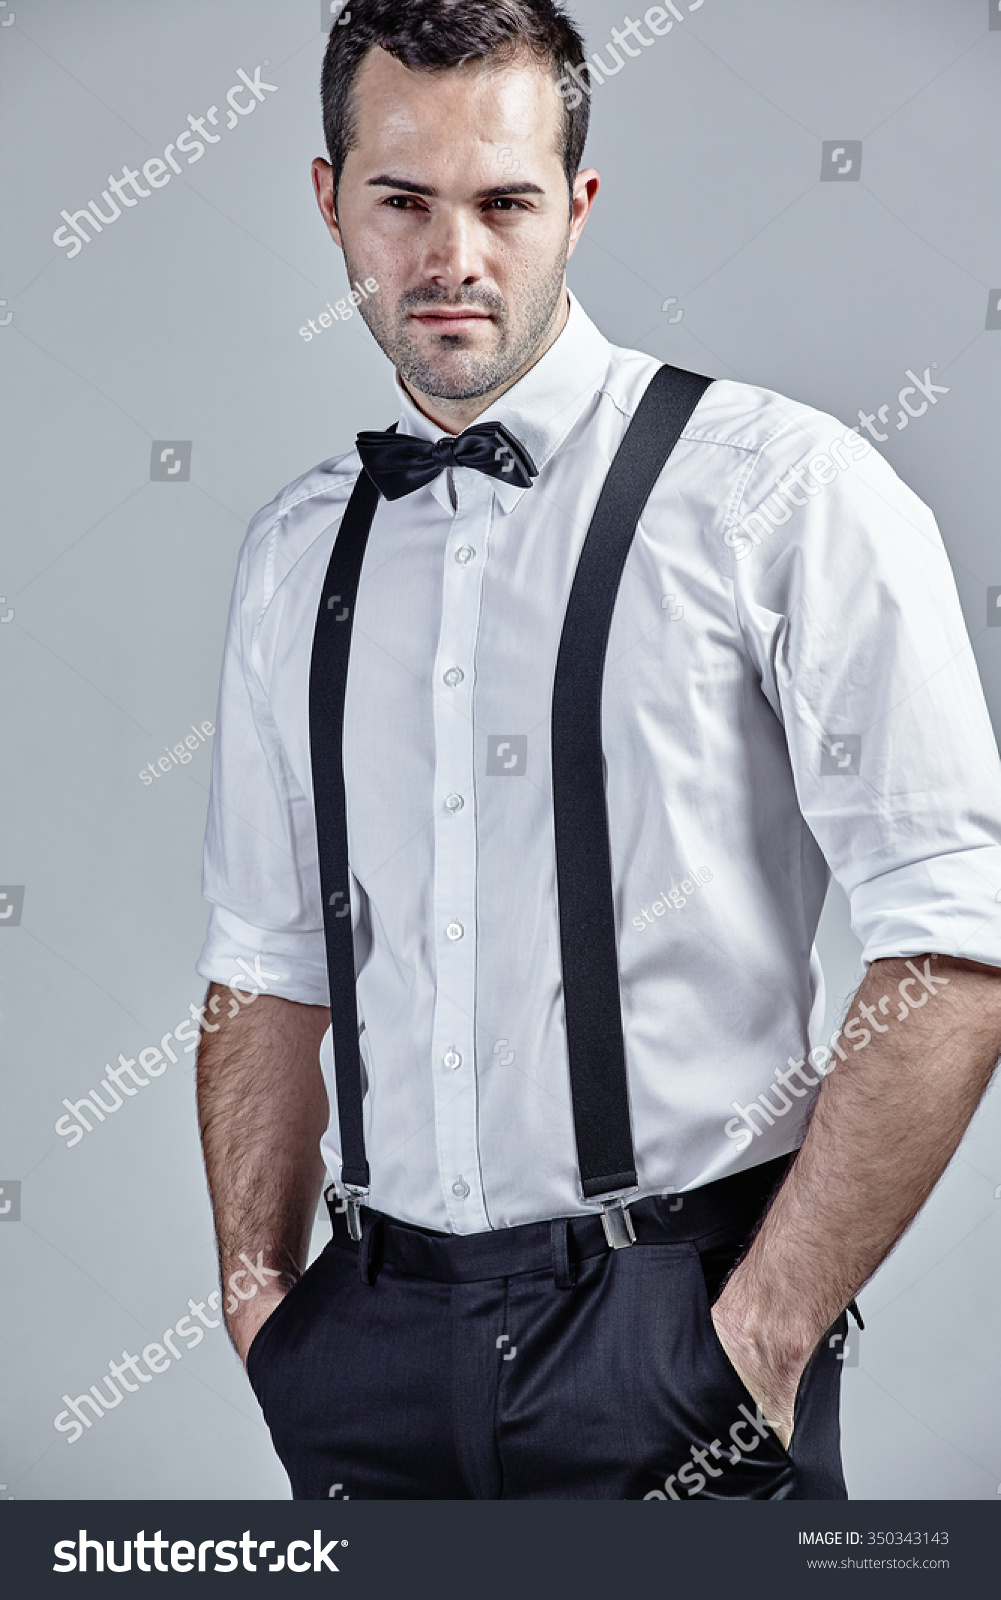 f939b02db5bc Man with suspenders and bow tie… Stock Photo 350343143 - Avopix.com